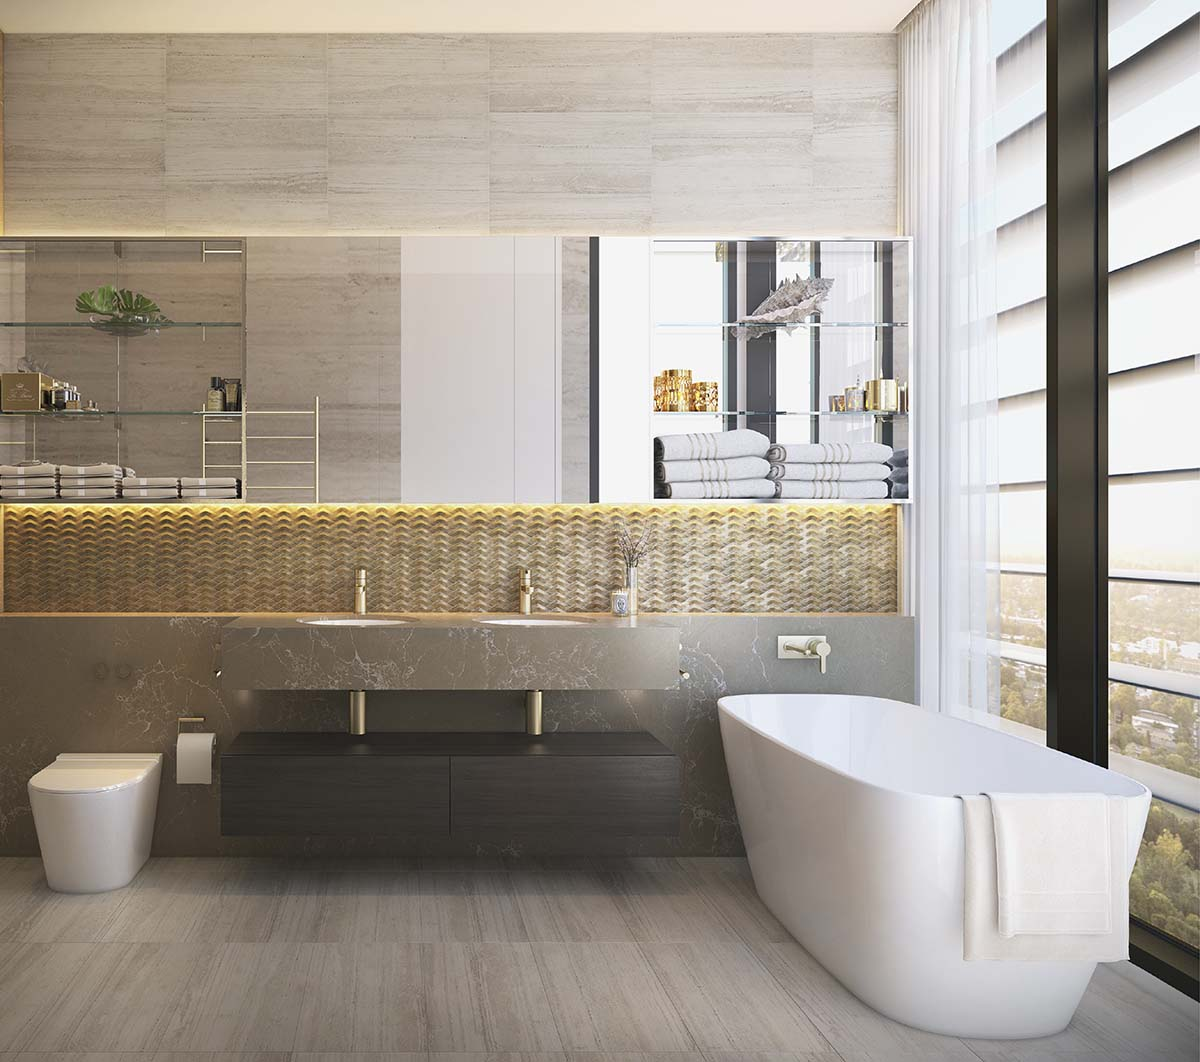 Bathroom with a city view, double sink and bathtub